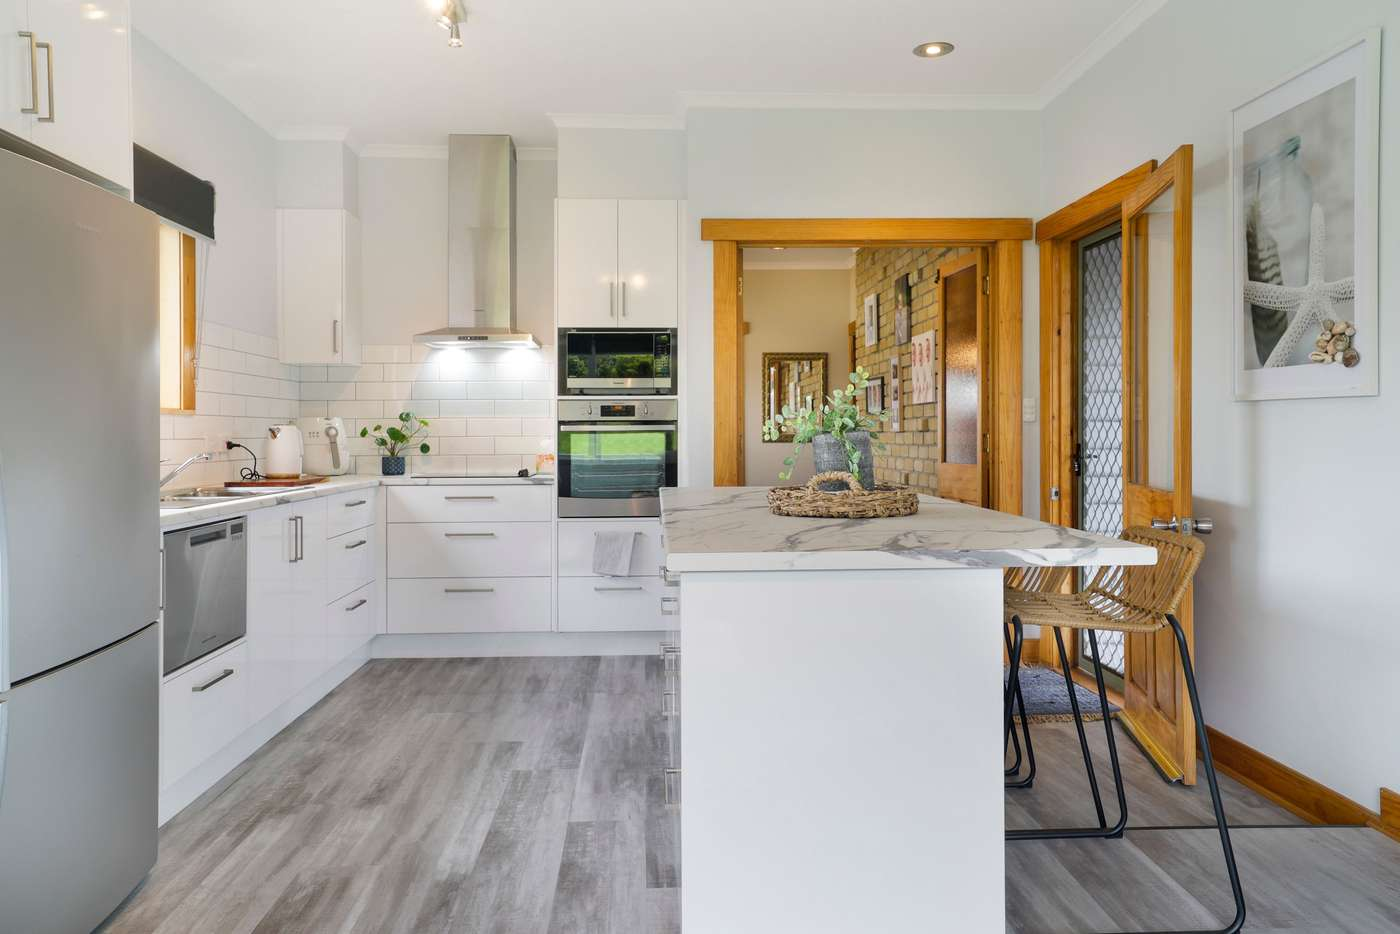 Fifth view of Homely house listing, 68 Coleman Street, Moonah TAS 7009